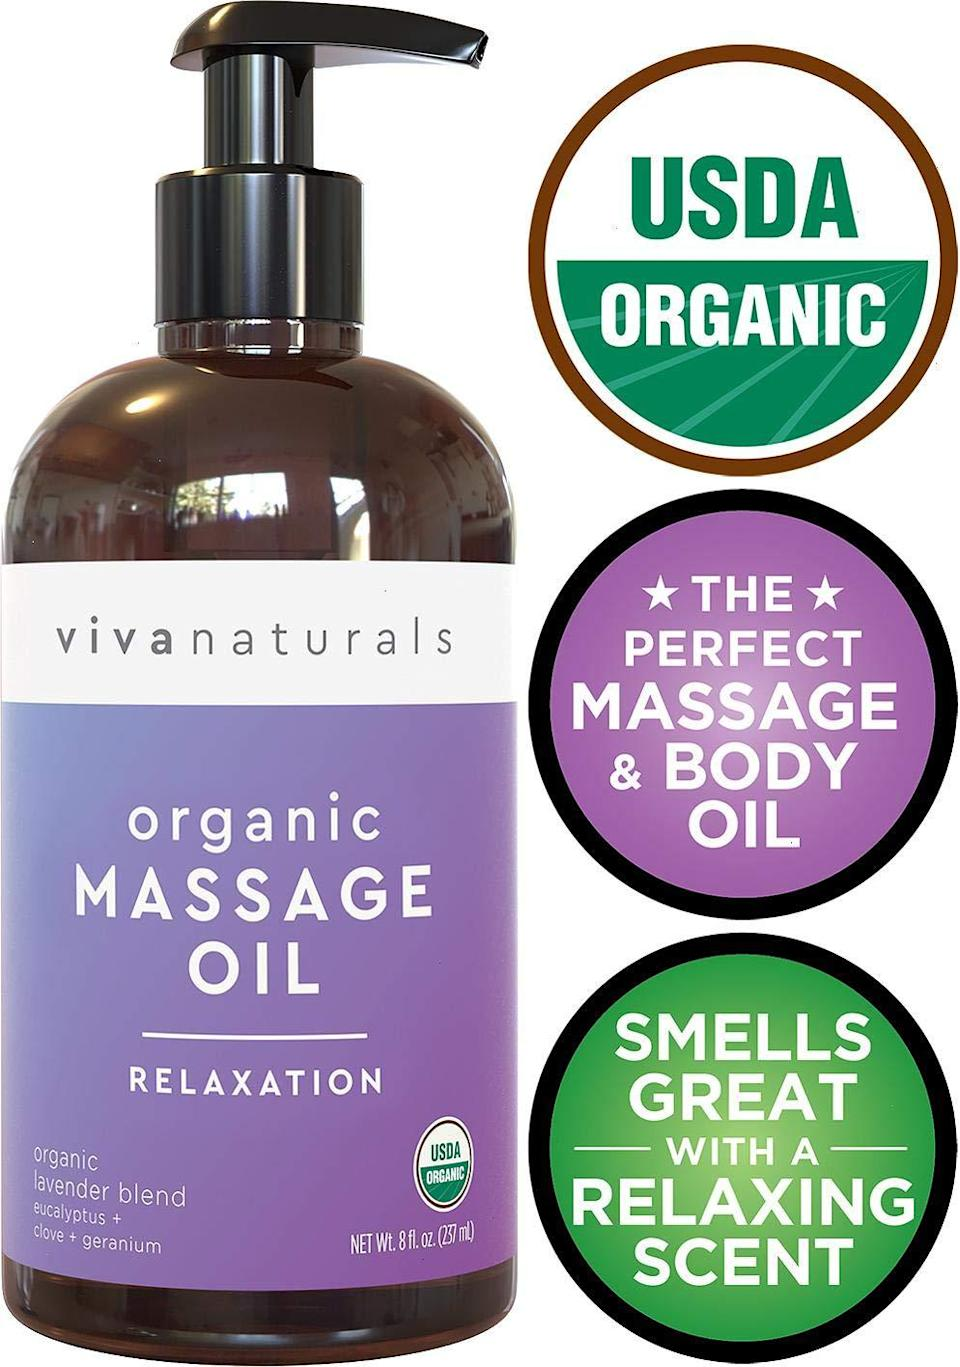 """<h3>Certified Organic Lavender Massage Oil </h3><br>This little purple bottle is an Amazon's Choice good, boasting over 300 rave reviews and a whopping 4.8 out of 5-star rating. The certified organic formula is crafted from a blend of lavender, coconut, sunflower, almond, and jojoba oils; it can be used for massages (sensual or otherwise); and is deemed by customers to be utterly soothing, amazingly scented, and the absolute best on the market.<br><br><strong>4.8 out of 5 stars and 548 reviews</strong><br><br><strong>Viva Naturals</strong> Organic Massage Oil with Relaxing Lavender Scent, $, available at <a href=""""https://www.amazon.com/Certified-Organic-Massage-Relaxing-Lavender/dp/B07R442KKY"""" rel=""""nofollow noopener"""" target=""""_blank"""" data-ylk=""""slk:Amazon"""" class=""""link rapid-noclick-resp"""">Amazon</a>"""